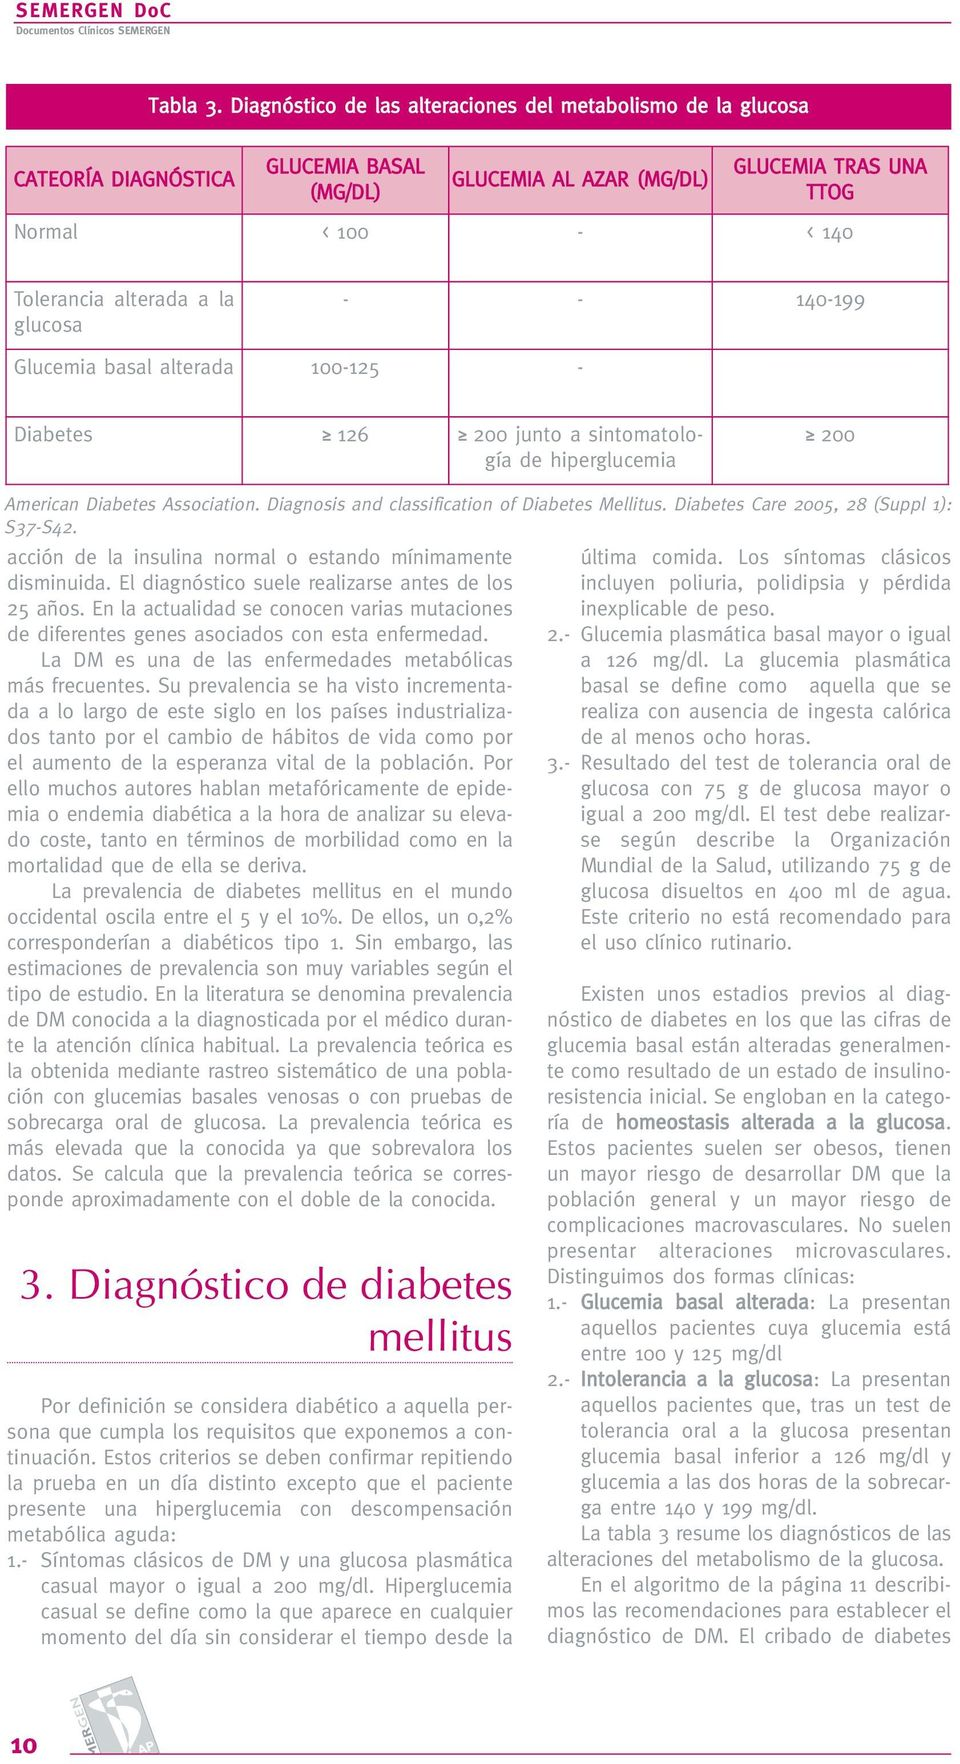 Glucemia basal alterada 100-125 - Diabetes 126 200 junto a sintomatología de hiperglucemia 200 American Diabetes Association. Diagnosis and classification of Diabetes Mellitus.